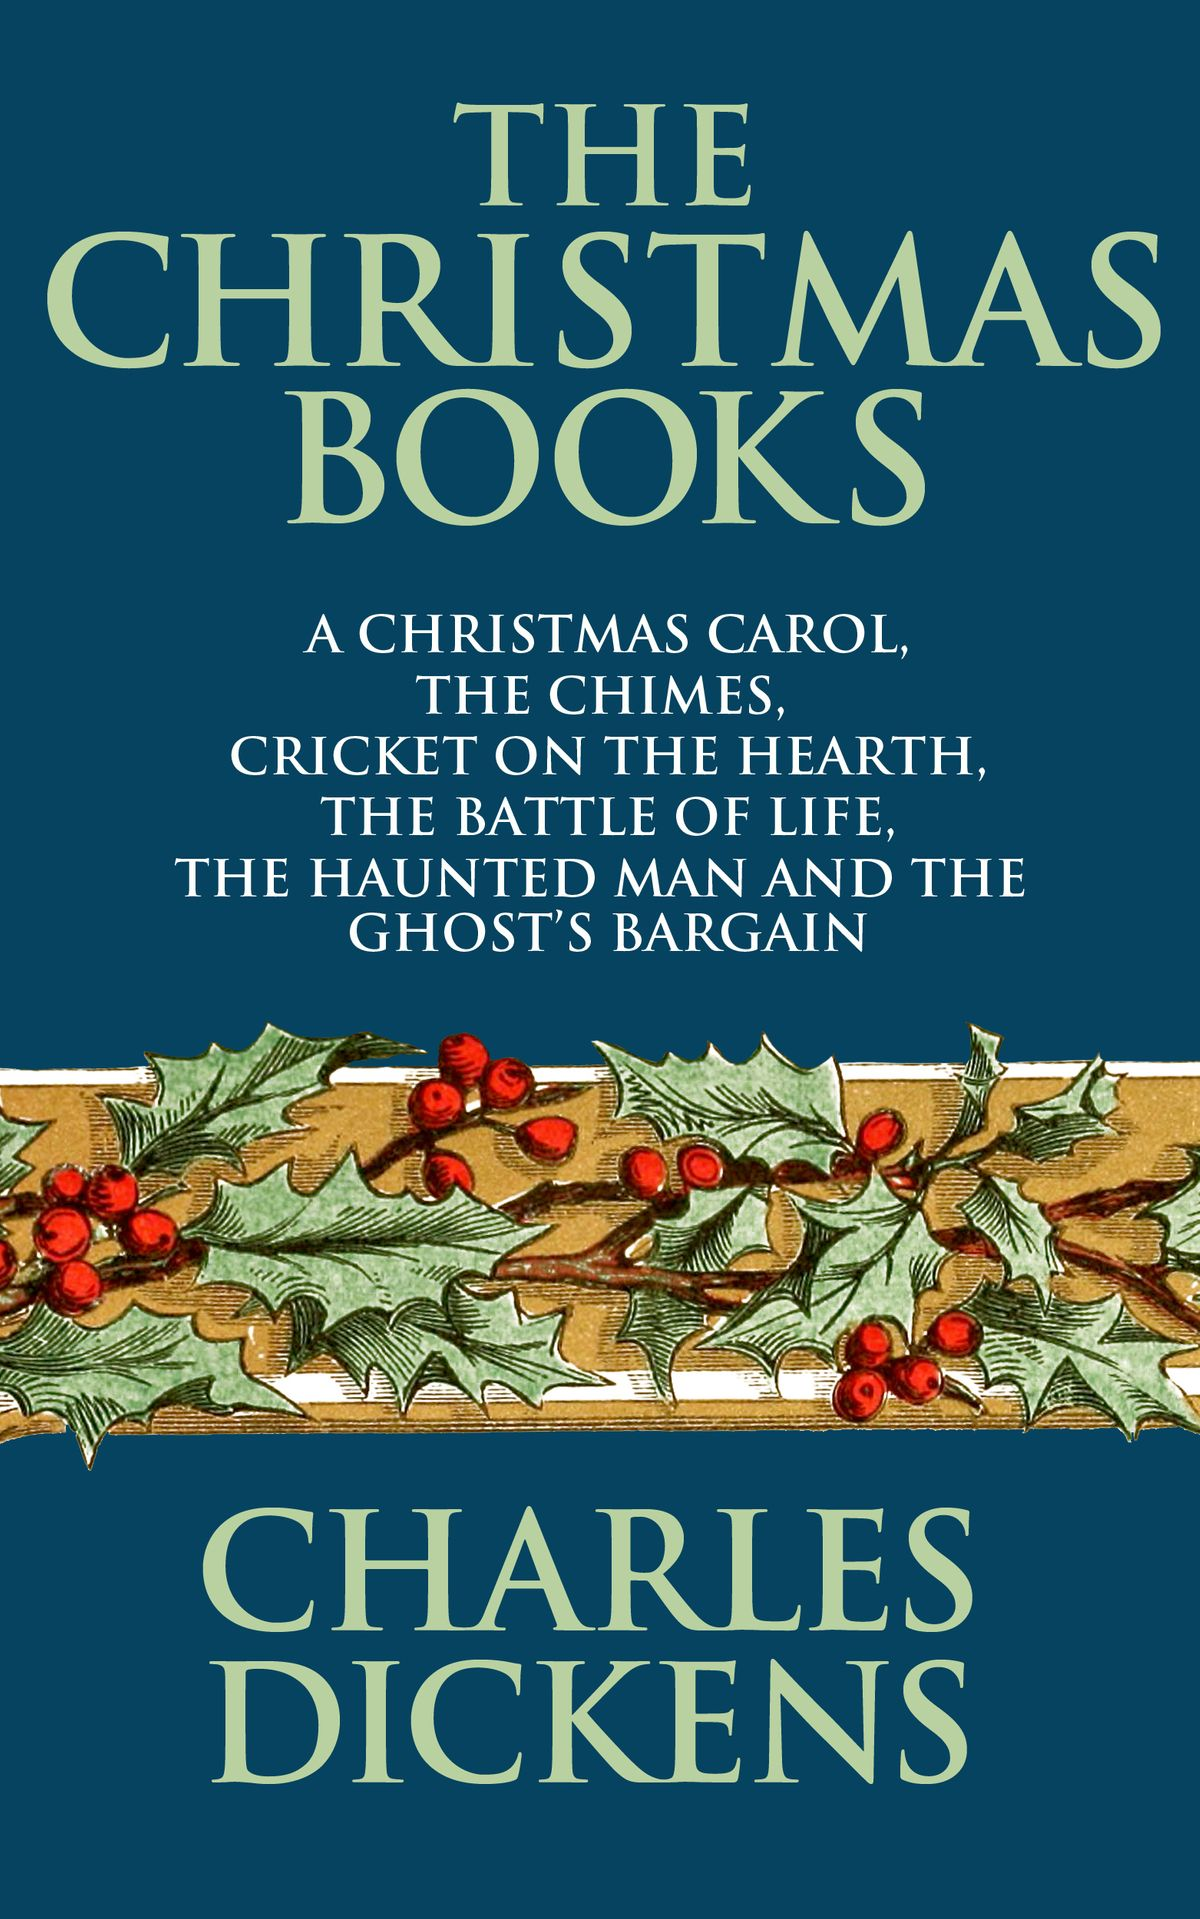 Charles Dickens books 14